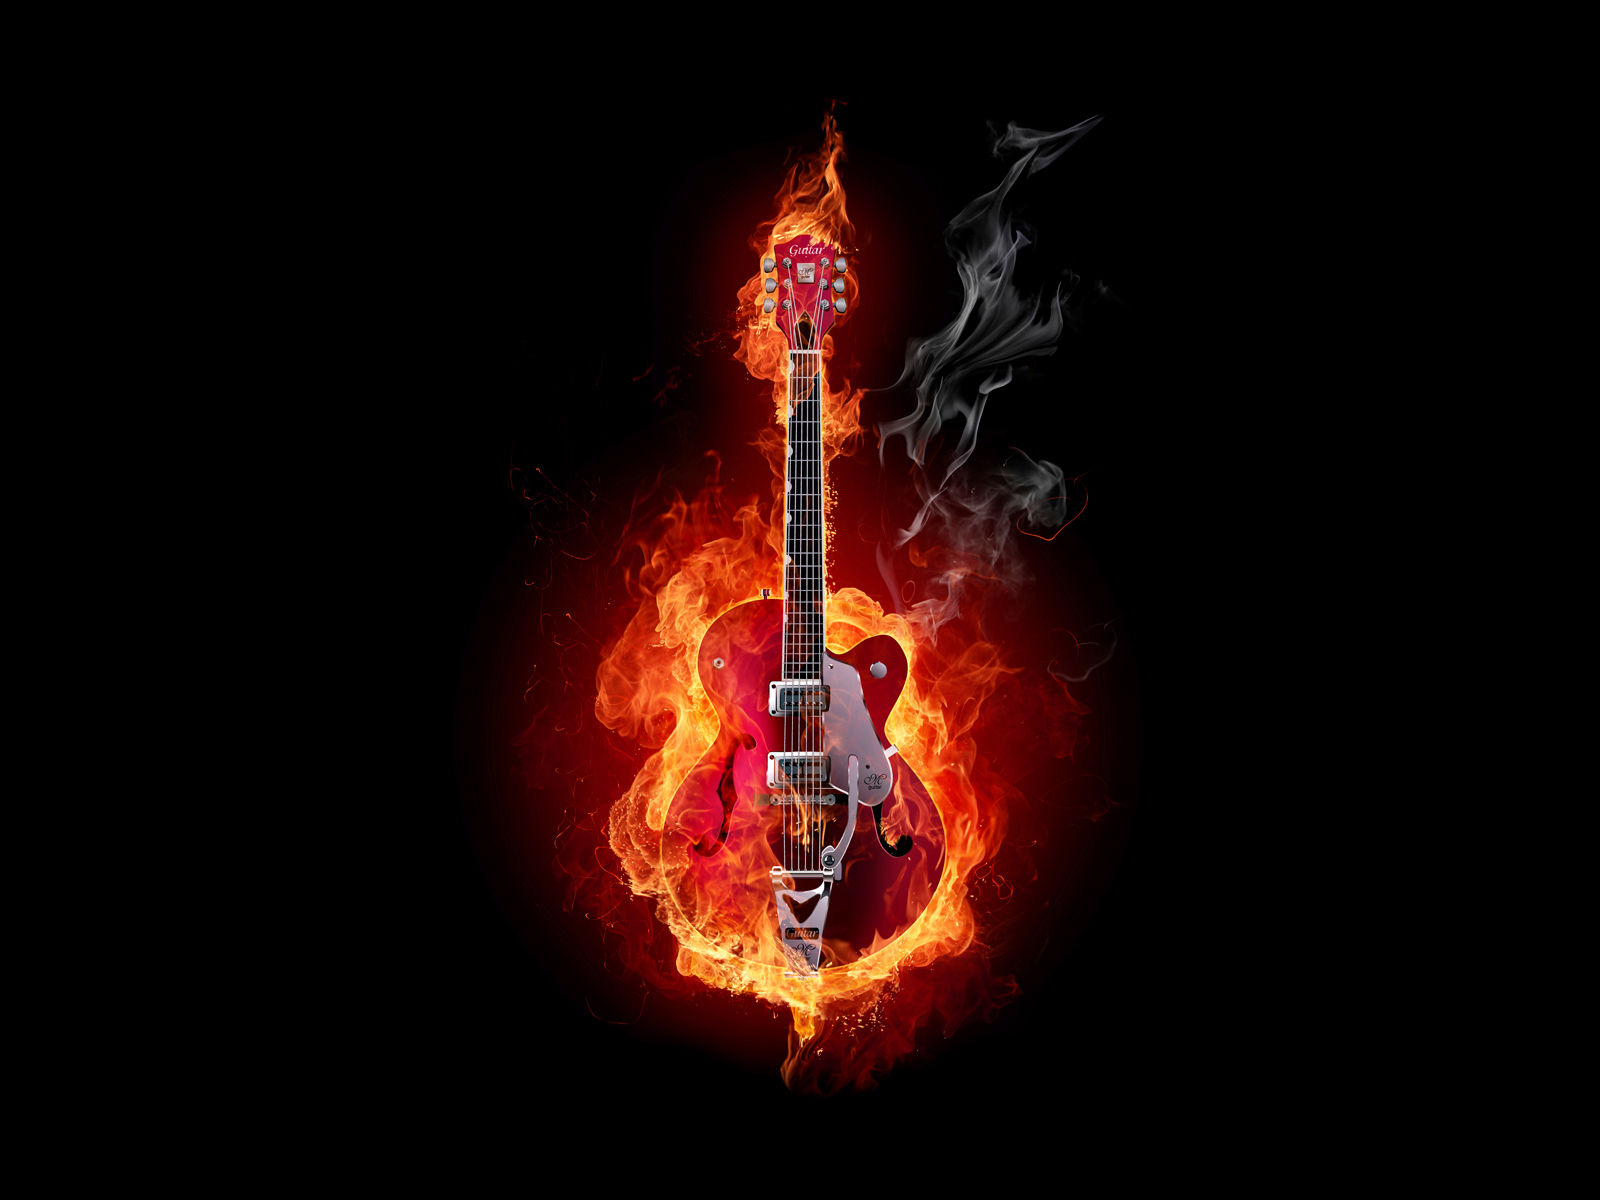 guitar on fire wallpapers - photo #8